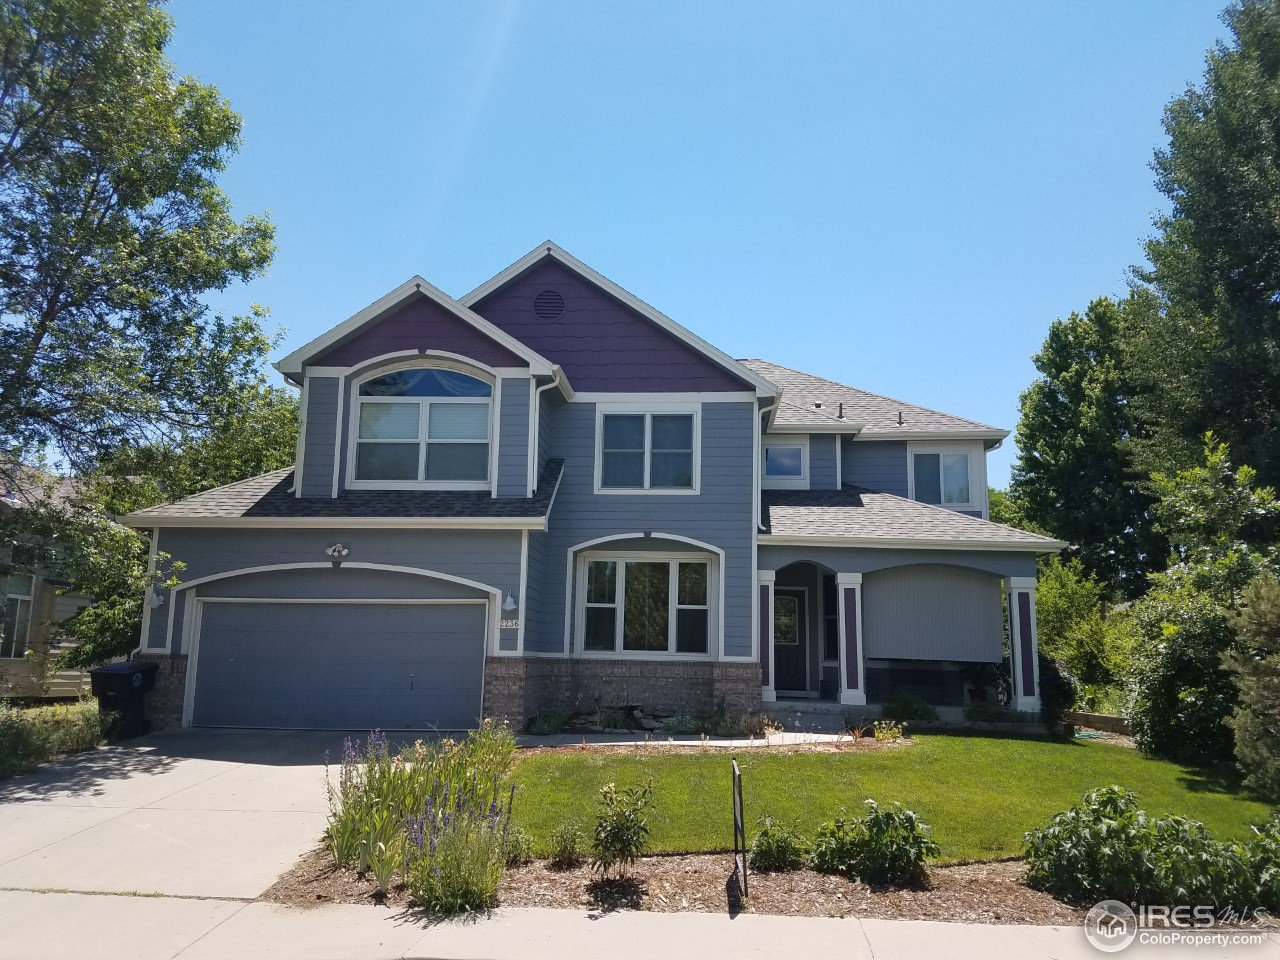 2236 Creekside Dr, Longmont CO 80504